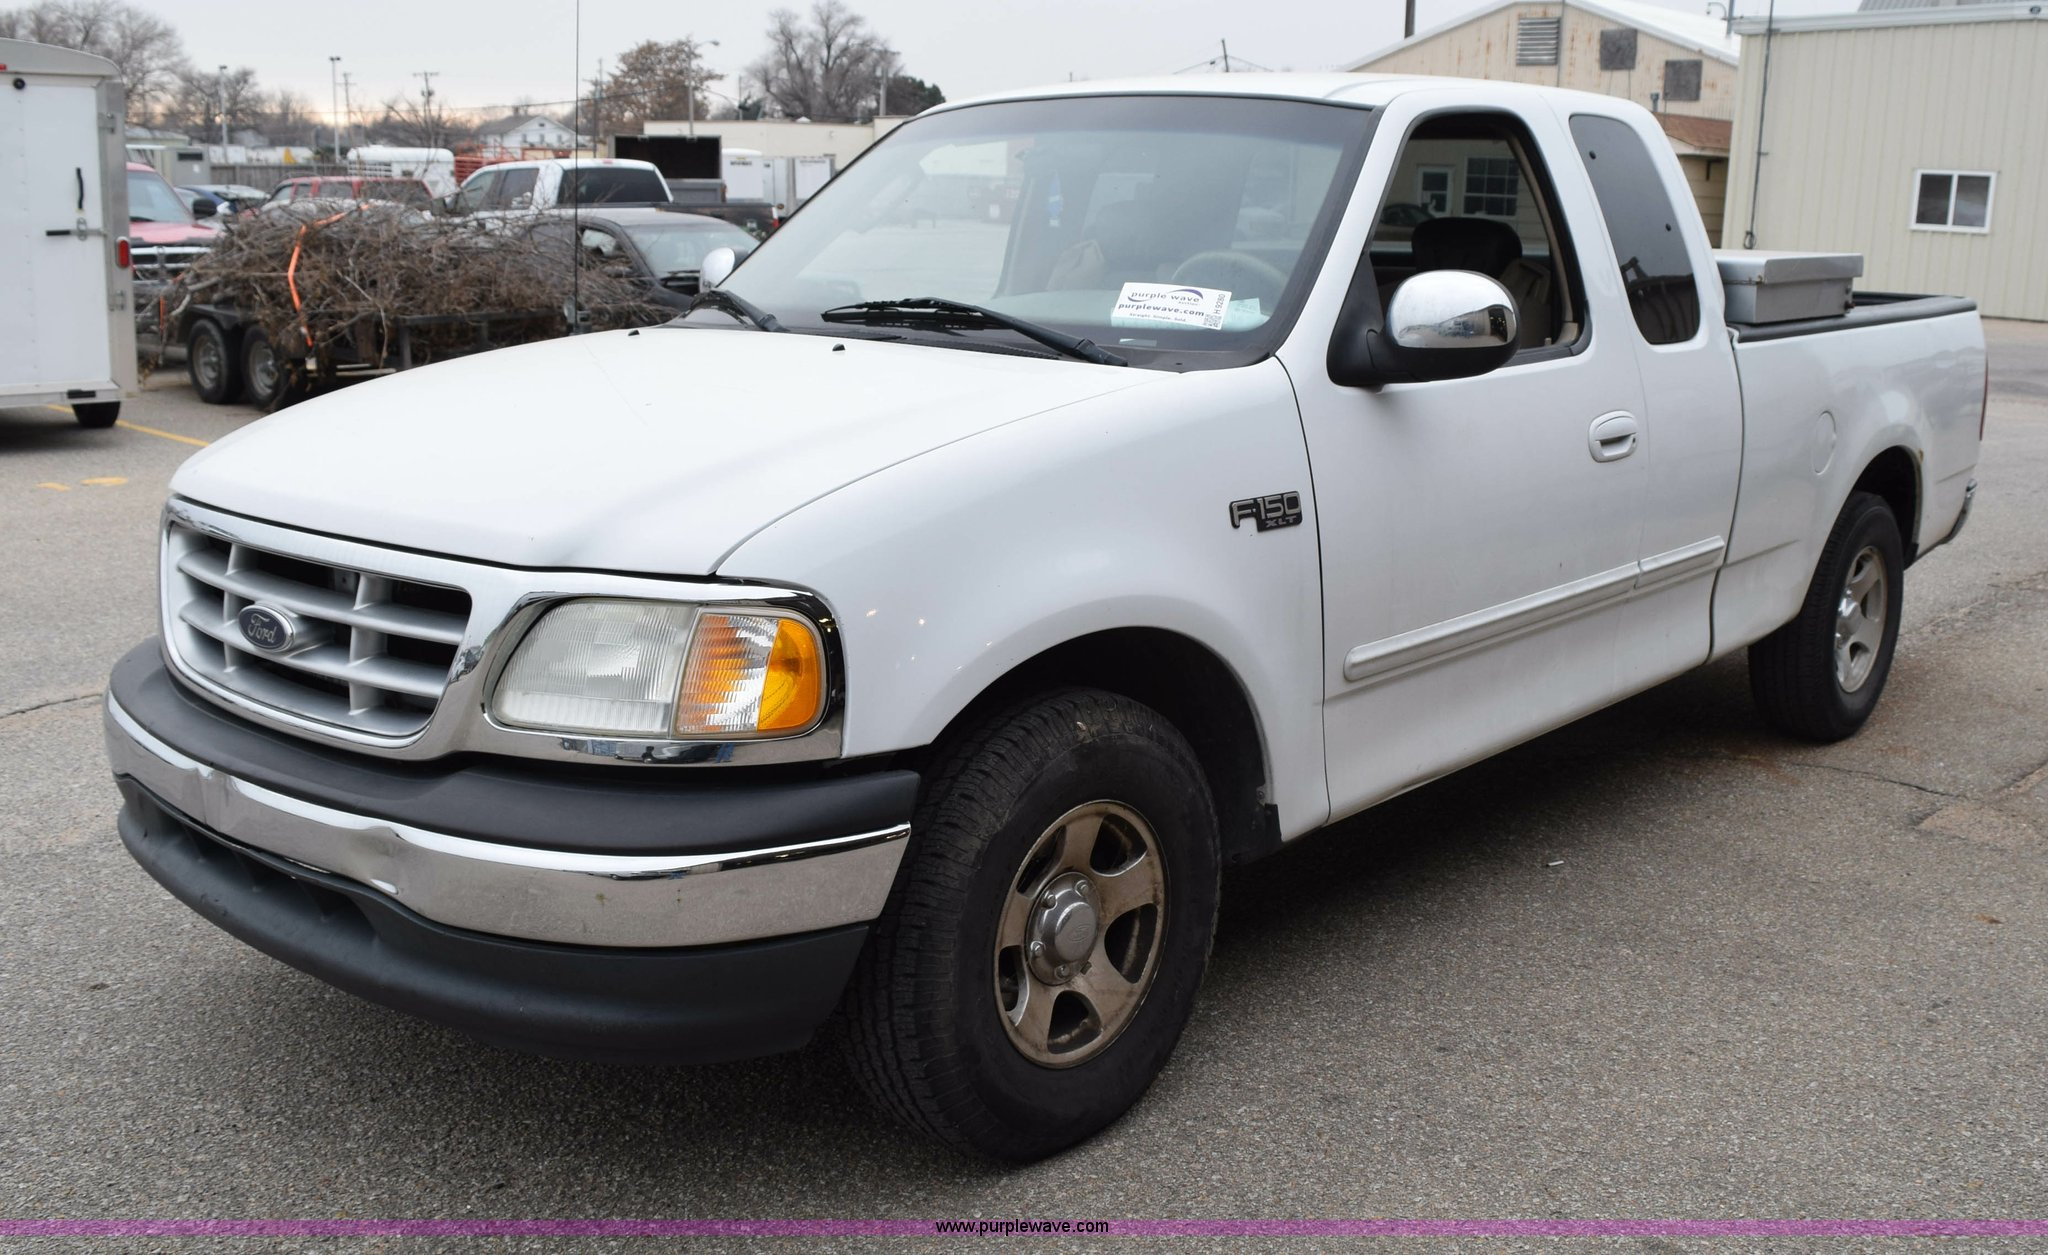 H9280 image for item h9280 2003 ford f150